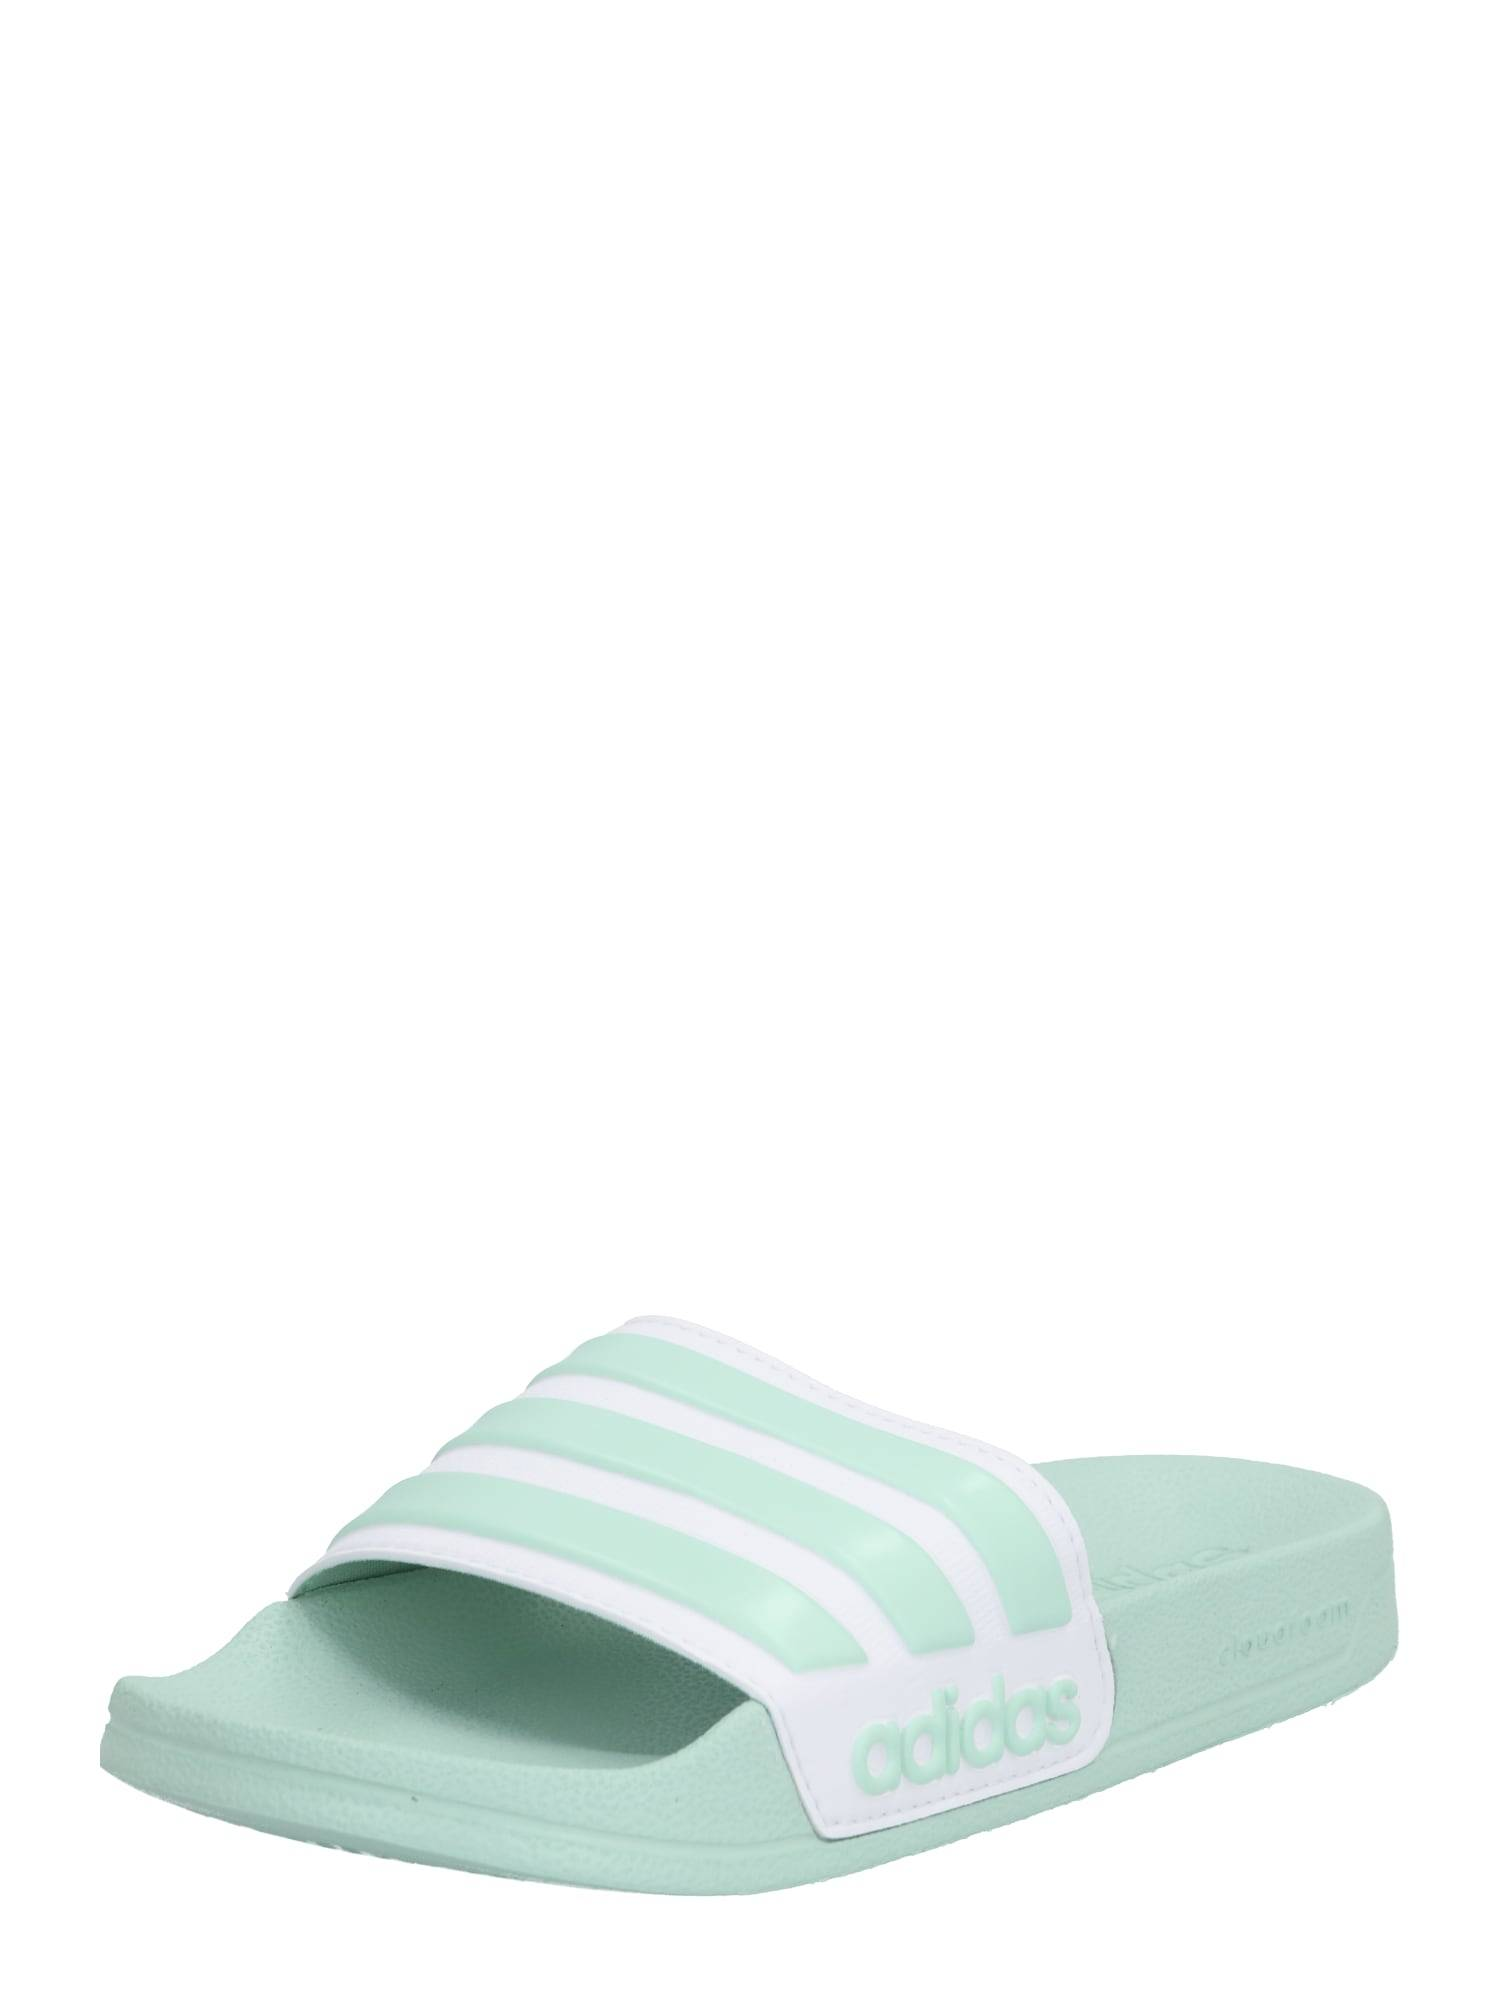 ADIDAS PERFORMANCE Claquettes / Tongs 'Adilette'  - Vert - Taille: 8 - female